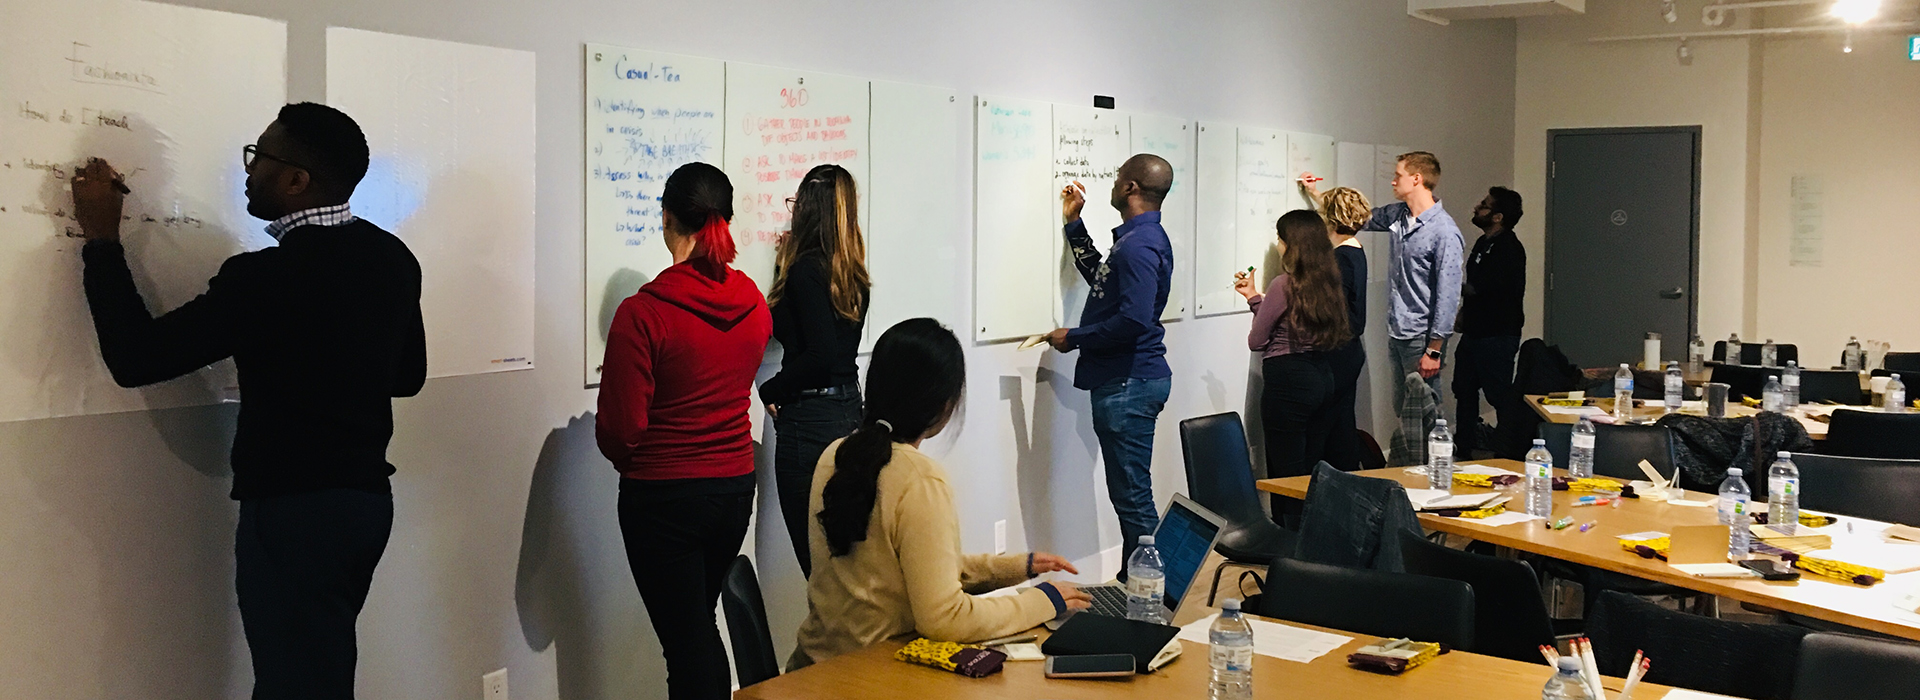 Students stand, writing on a whiteboard